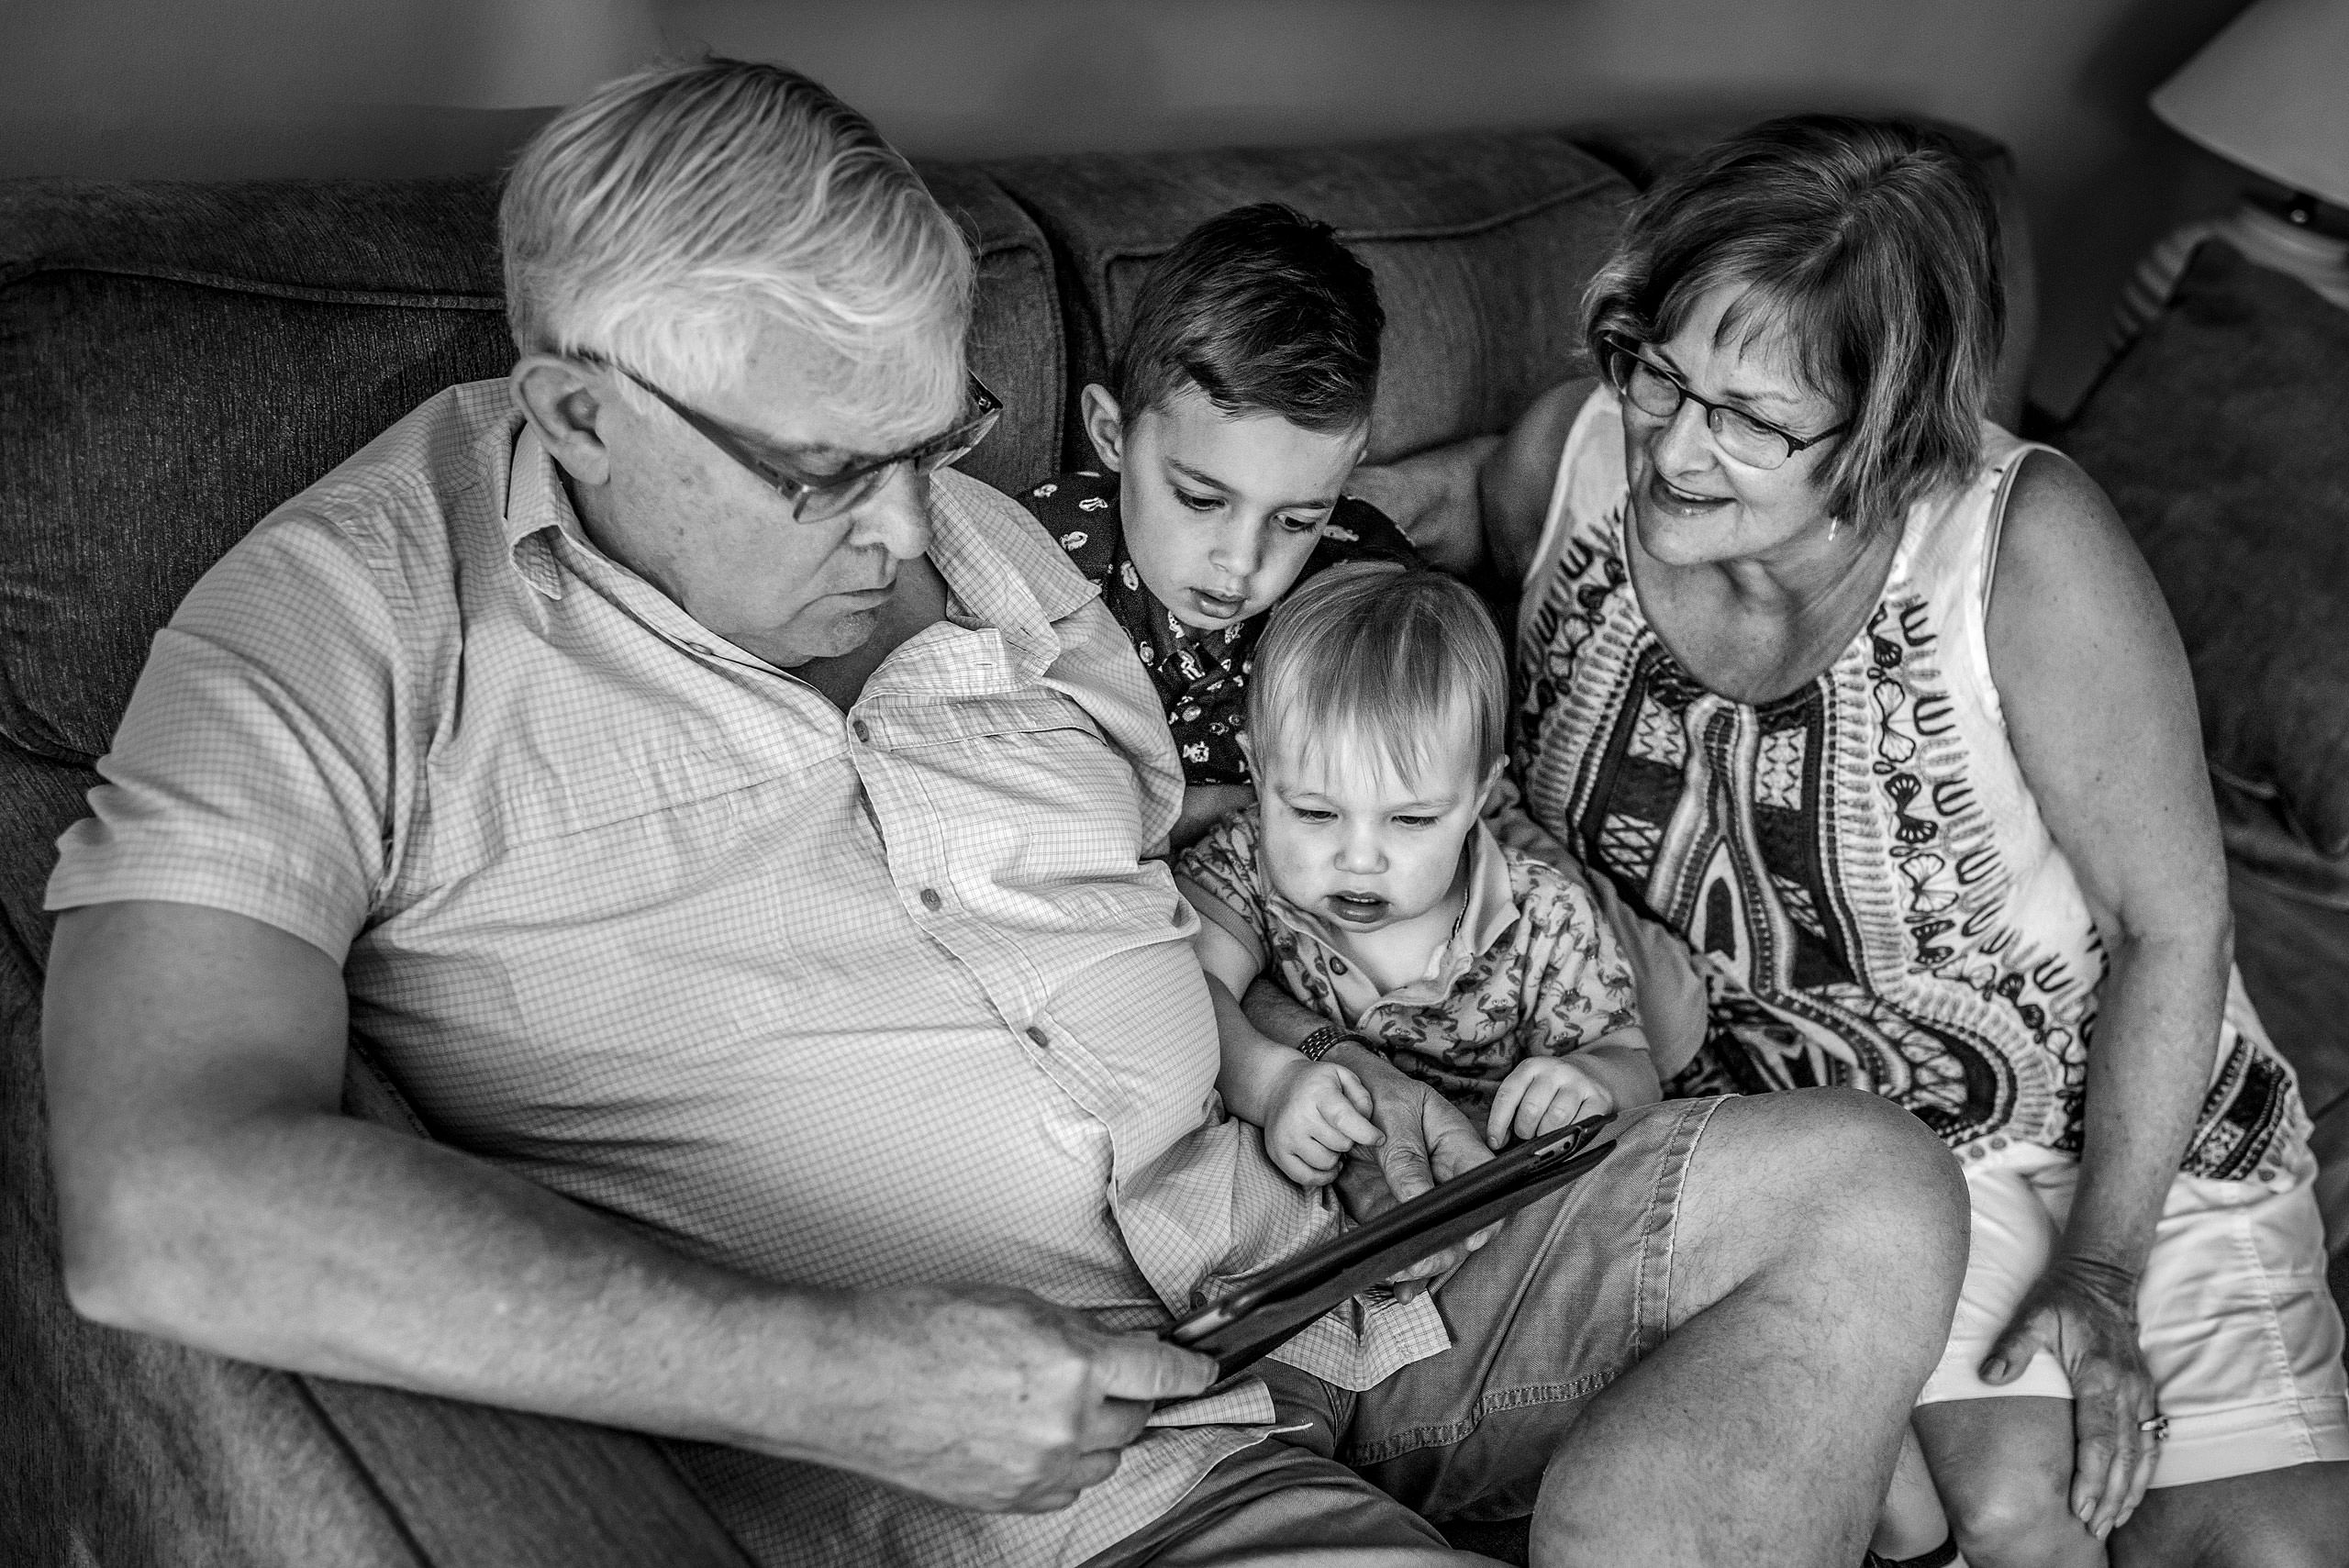 grandma and grandpa with their grandsons looking at an iPad by destination family photographers sean leblanc